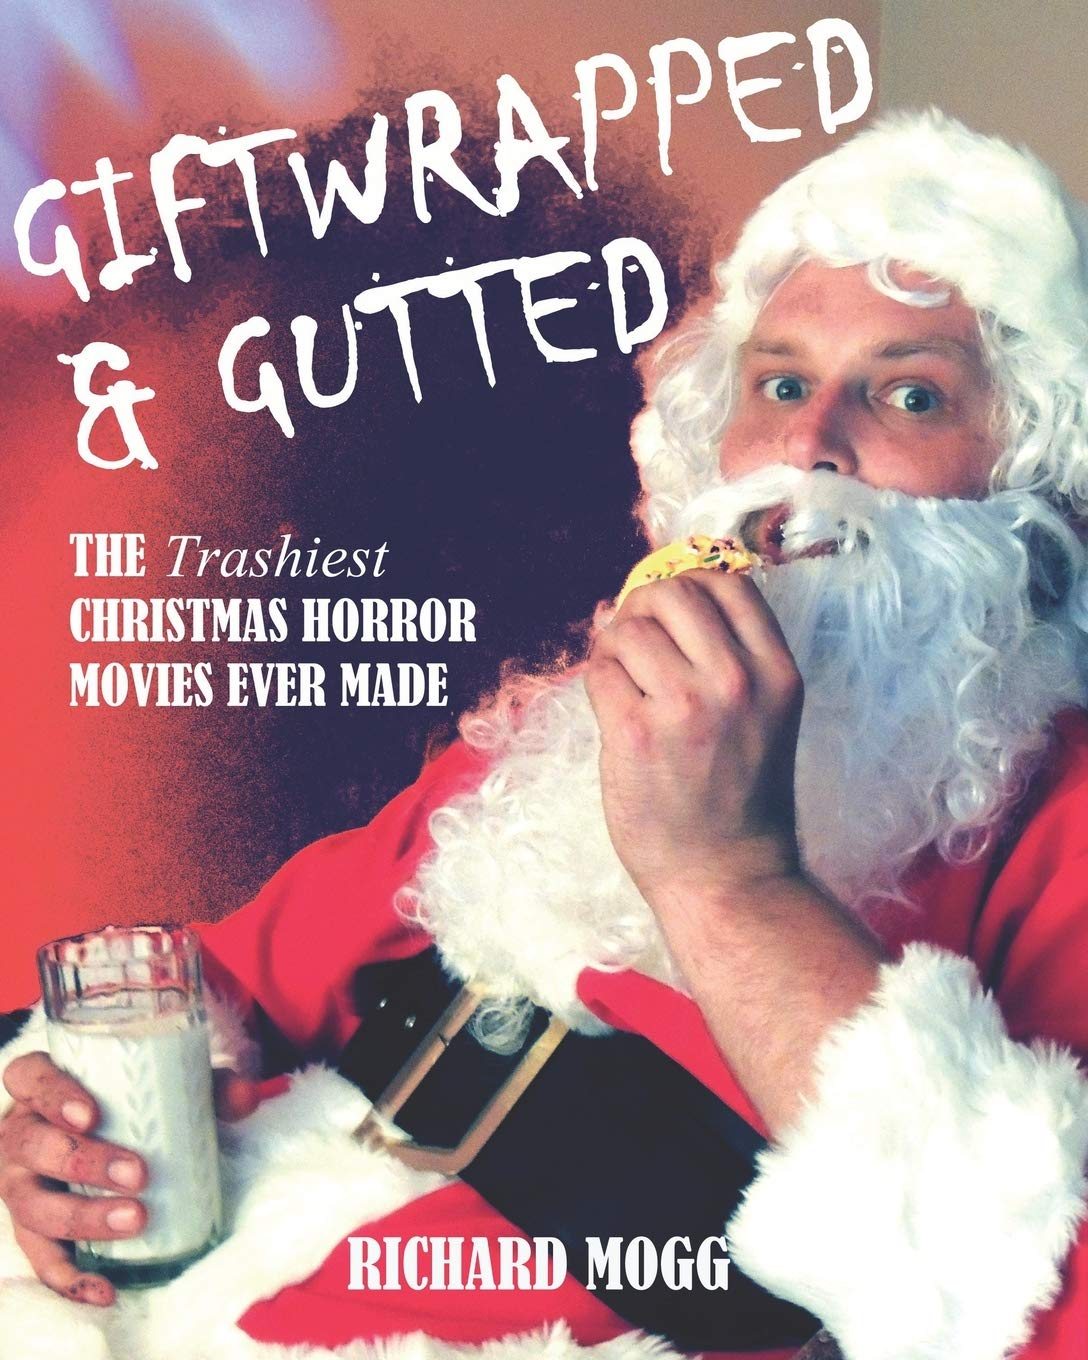 Amazon Com Giftwrapped Gutted The Trashiest Christmas Horror Movies Ever Made 9781999481711 Mogg Richard Ritter Tim Polonia Mark Haines Richard W Castiglione Dave Herman Phil Whitson Gary Torgl Mark Sholder Jack Stone